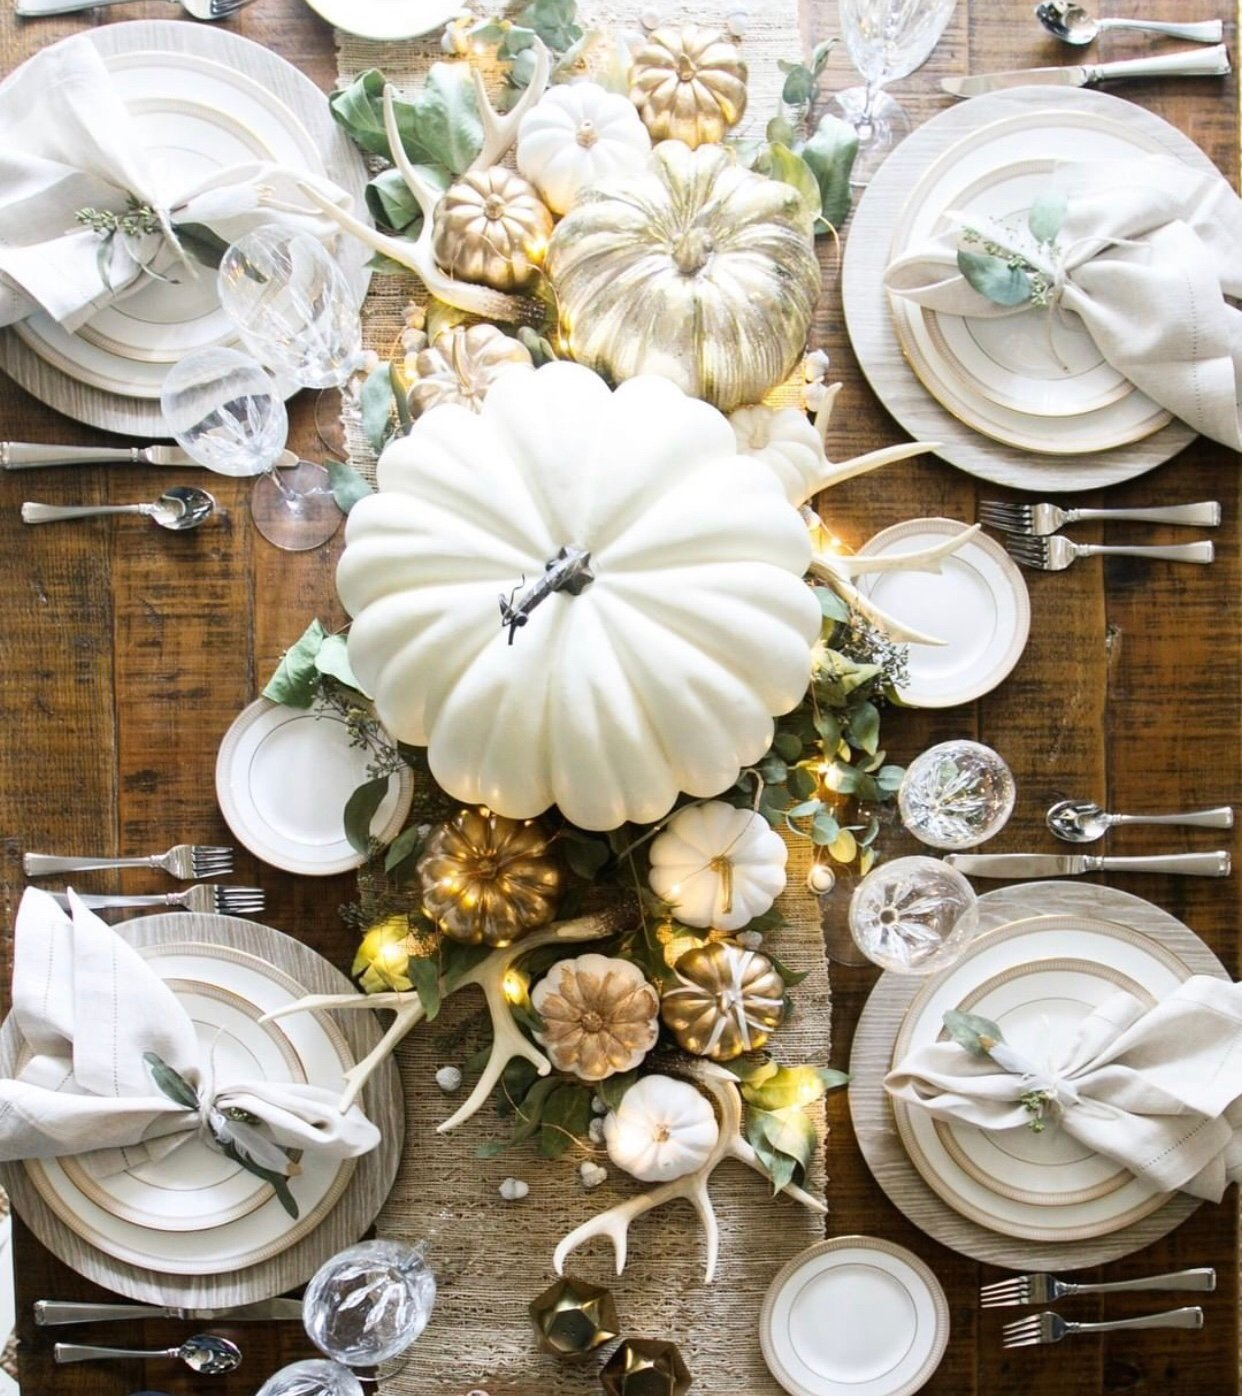 Thanksgiving Table Decorating: 39 Stunning Thanksgiving Table Decor Ideas